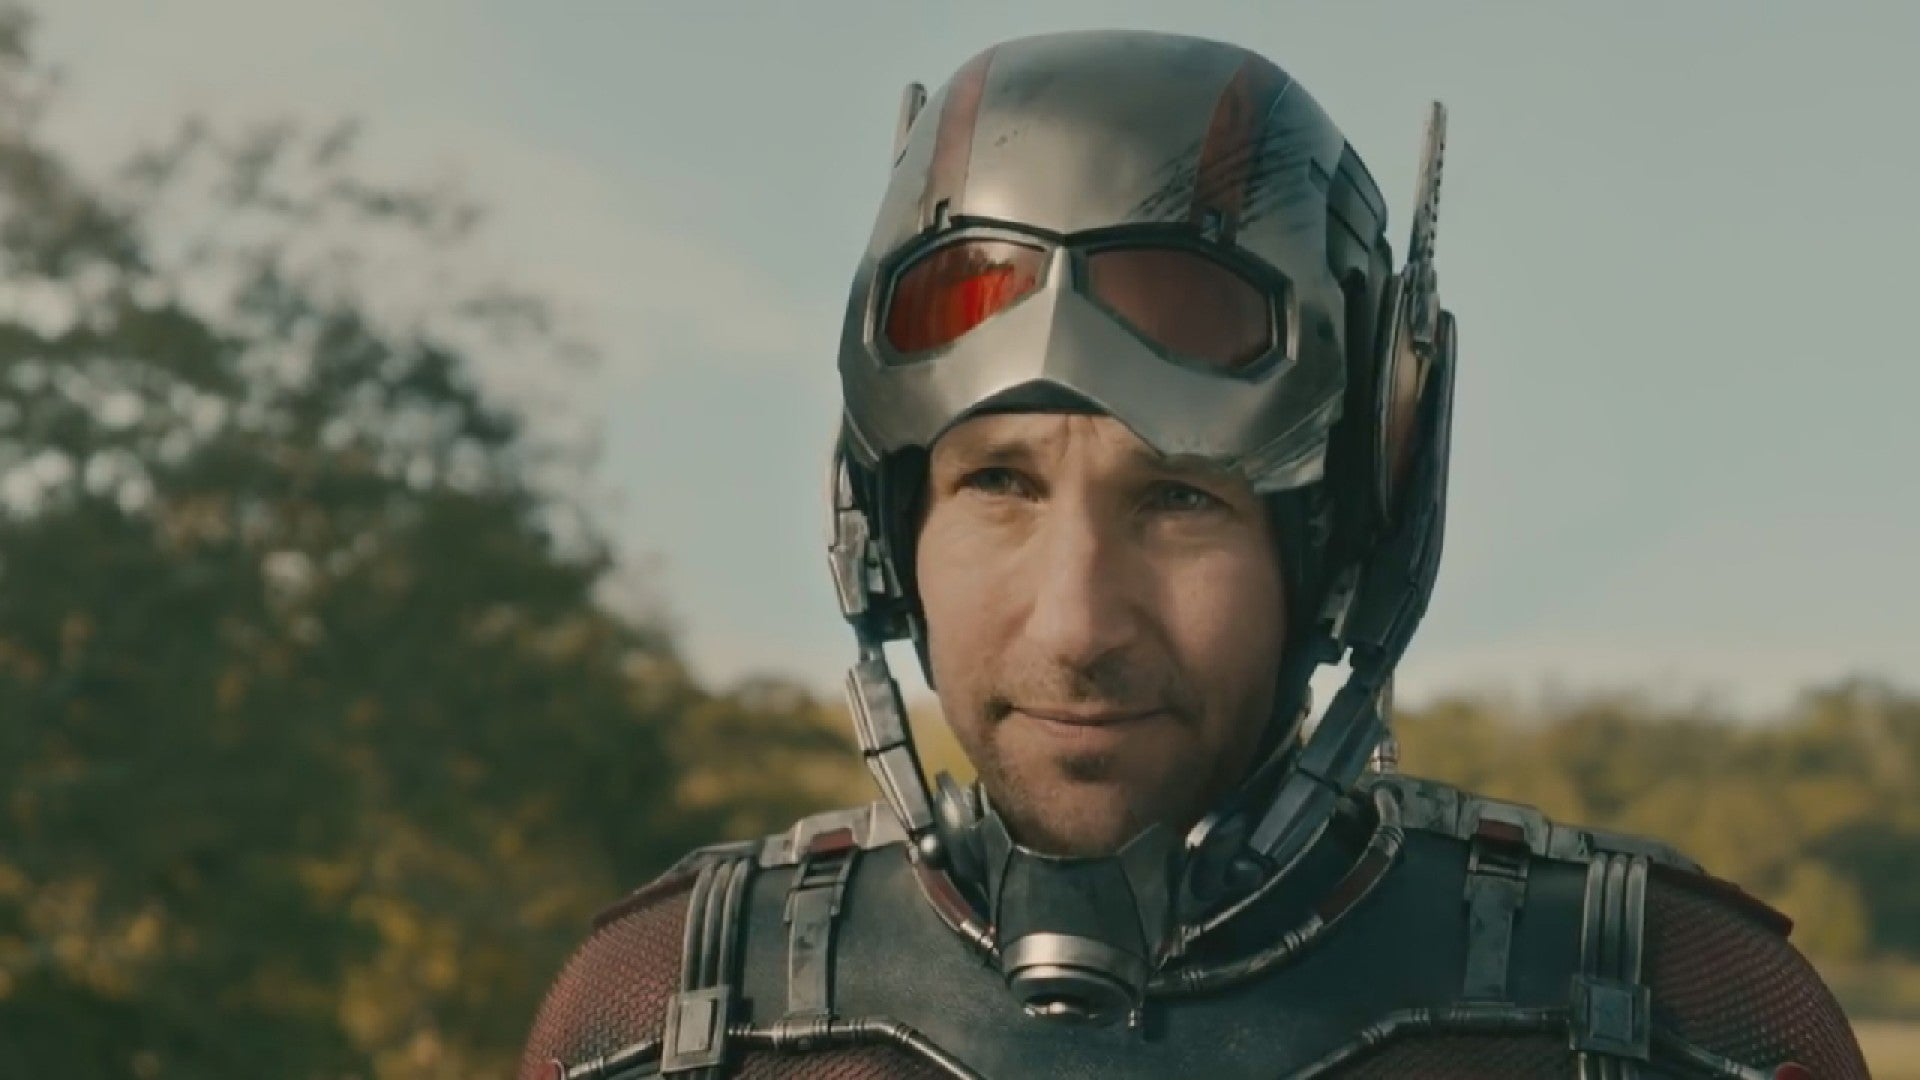 13 'Ant-Man' Easter Eggs and References to Marvel Comics, The ...